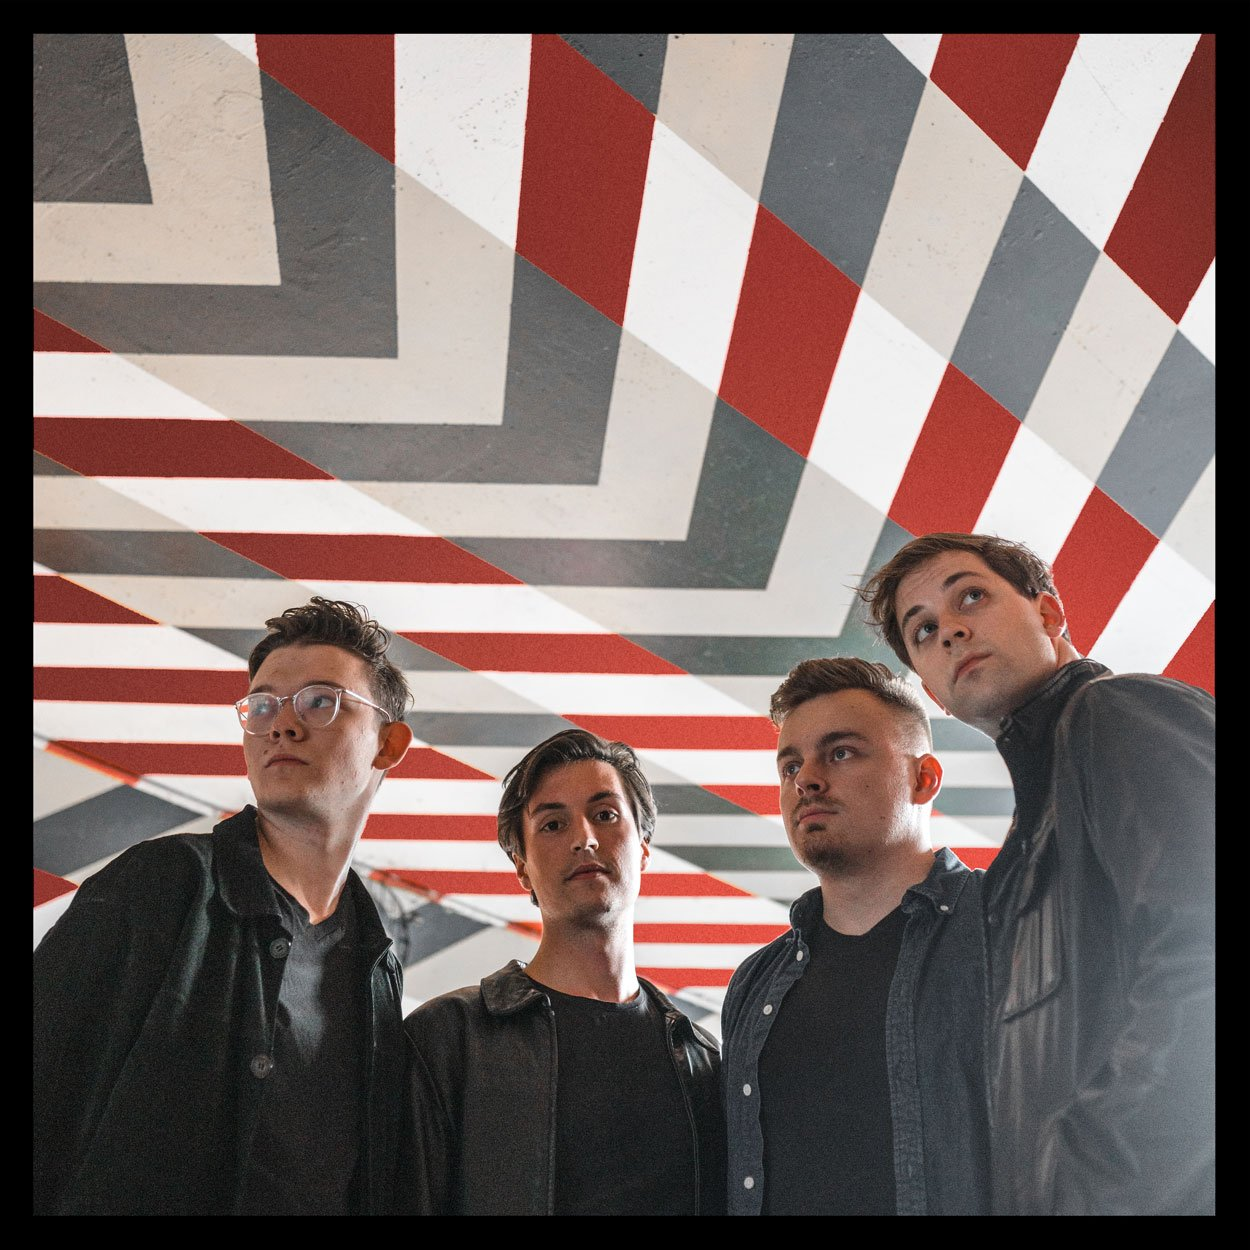 Winners of John Lennon songwriting contest, Toronto's THE HIGH LOVES release stunning new single 'Tried Too Hard'